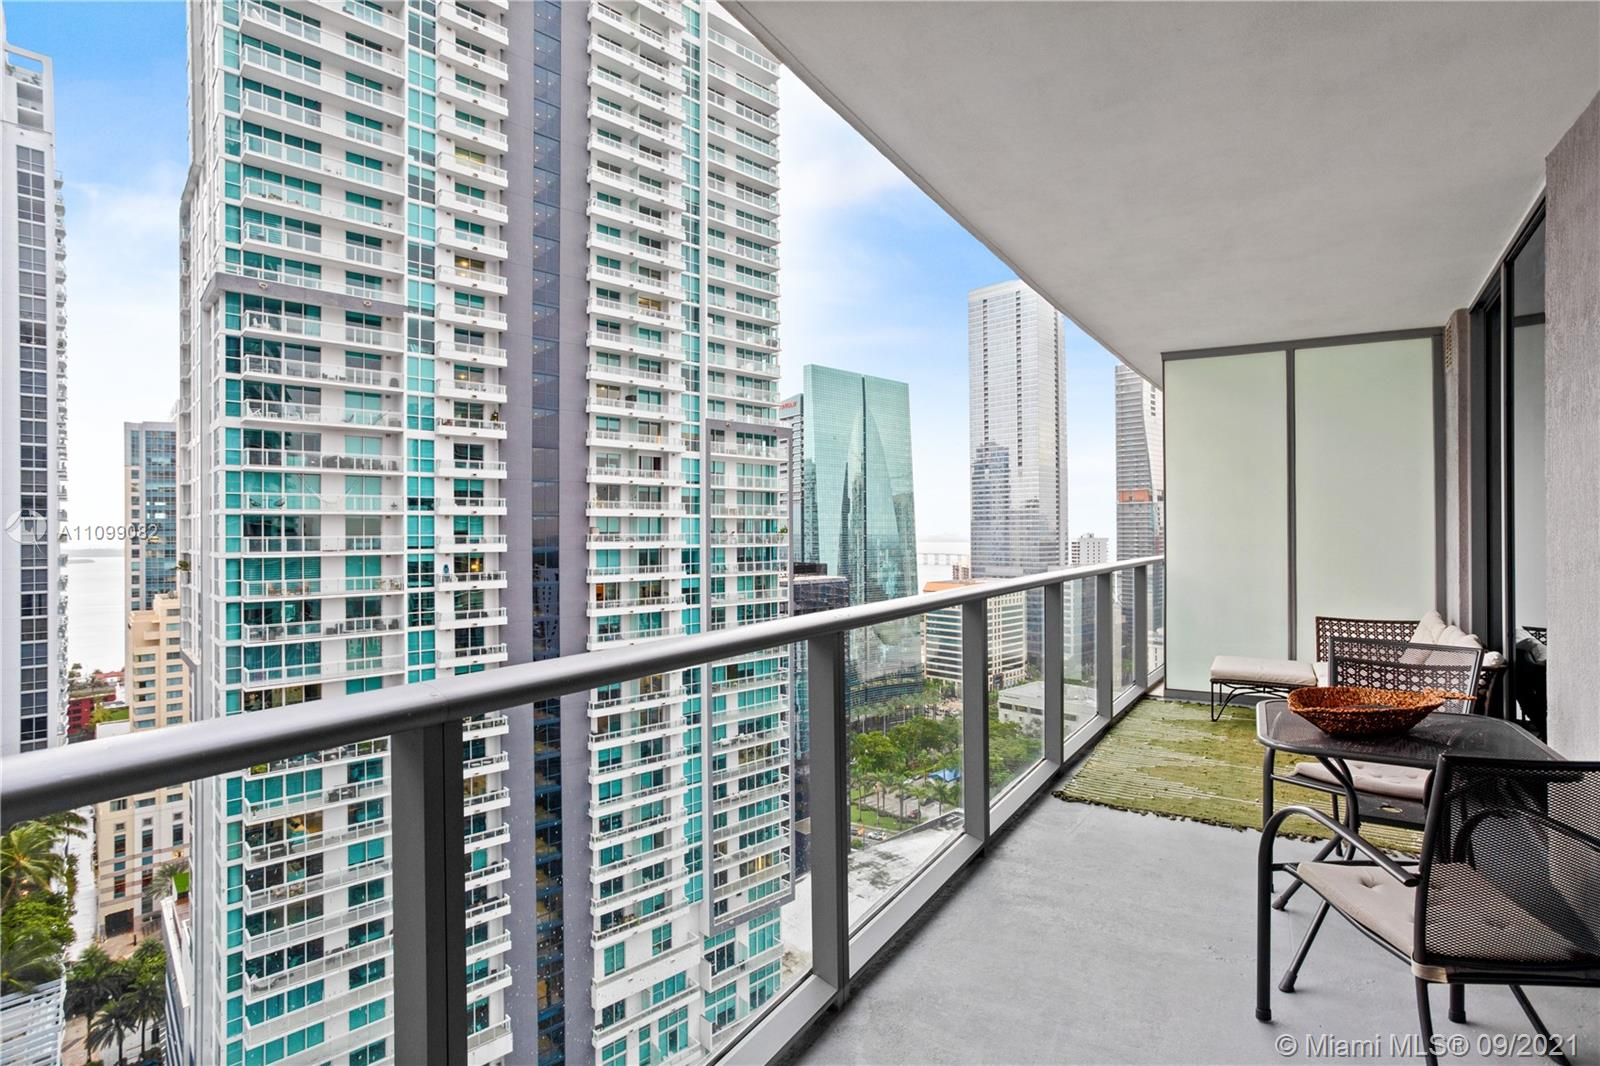 Millecento located in Brickell. Stylish 2Bed/2Bath and den, beautiful bay views. Fully open kitchen concept. Floor toceiling glass windows and sliding glass doors, washer/dryer in unit. Designer building offers great amenities 2 pools, one at the 9th floor and a rooftop pool with incredible views, hot tub, Lounge room, kids room, movie theater, fitness center, valet parking garage, and 24 hr. security guard. Walking distance to Mary Brickell Village, restaurants, shops, Brickell City Center and more. Move around with ease with the Metro mover and trolley just steps away from Millecento.